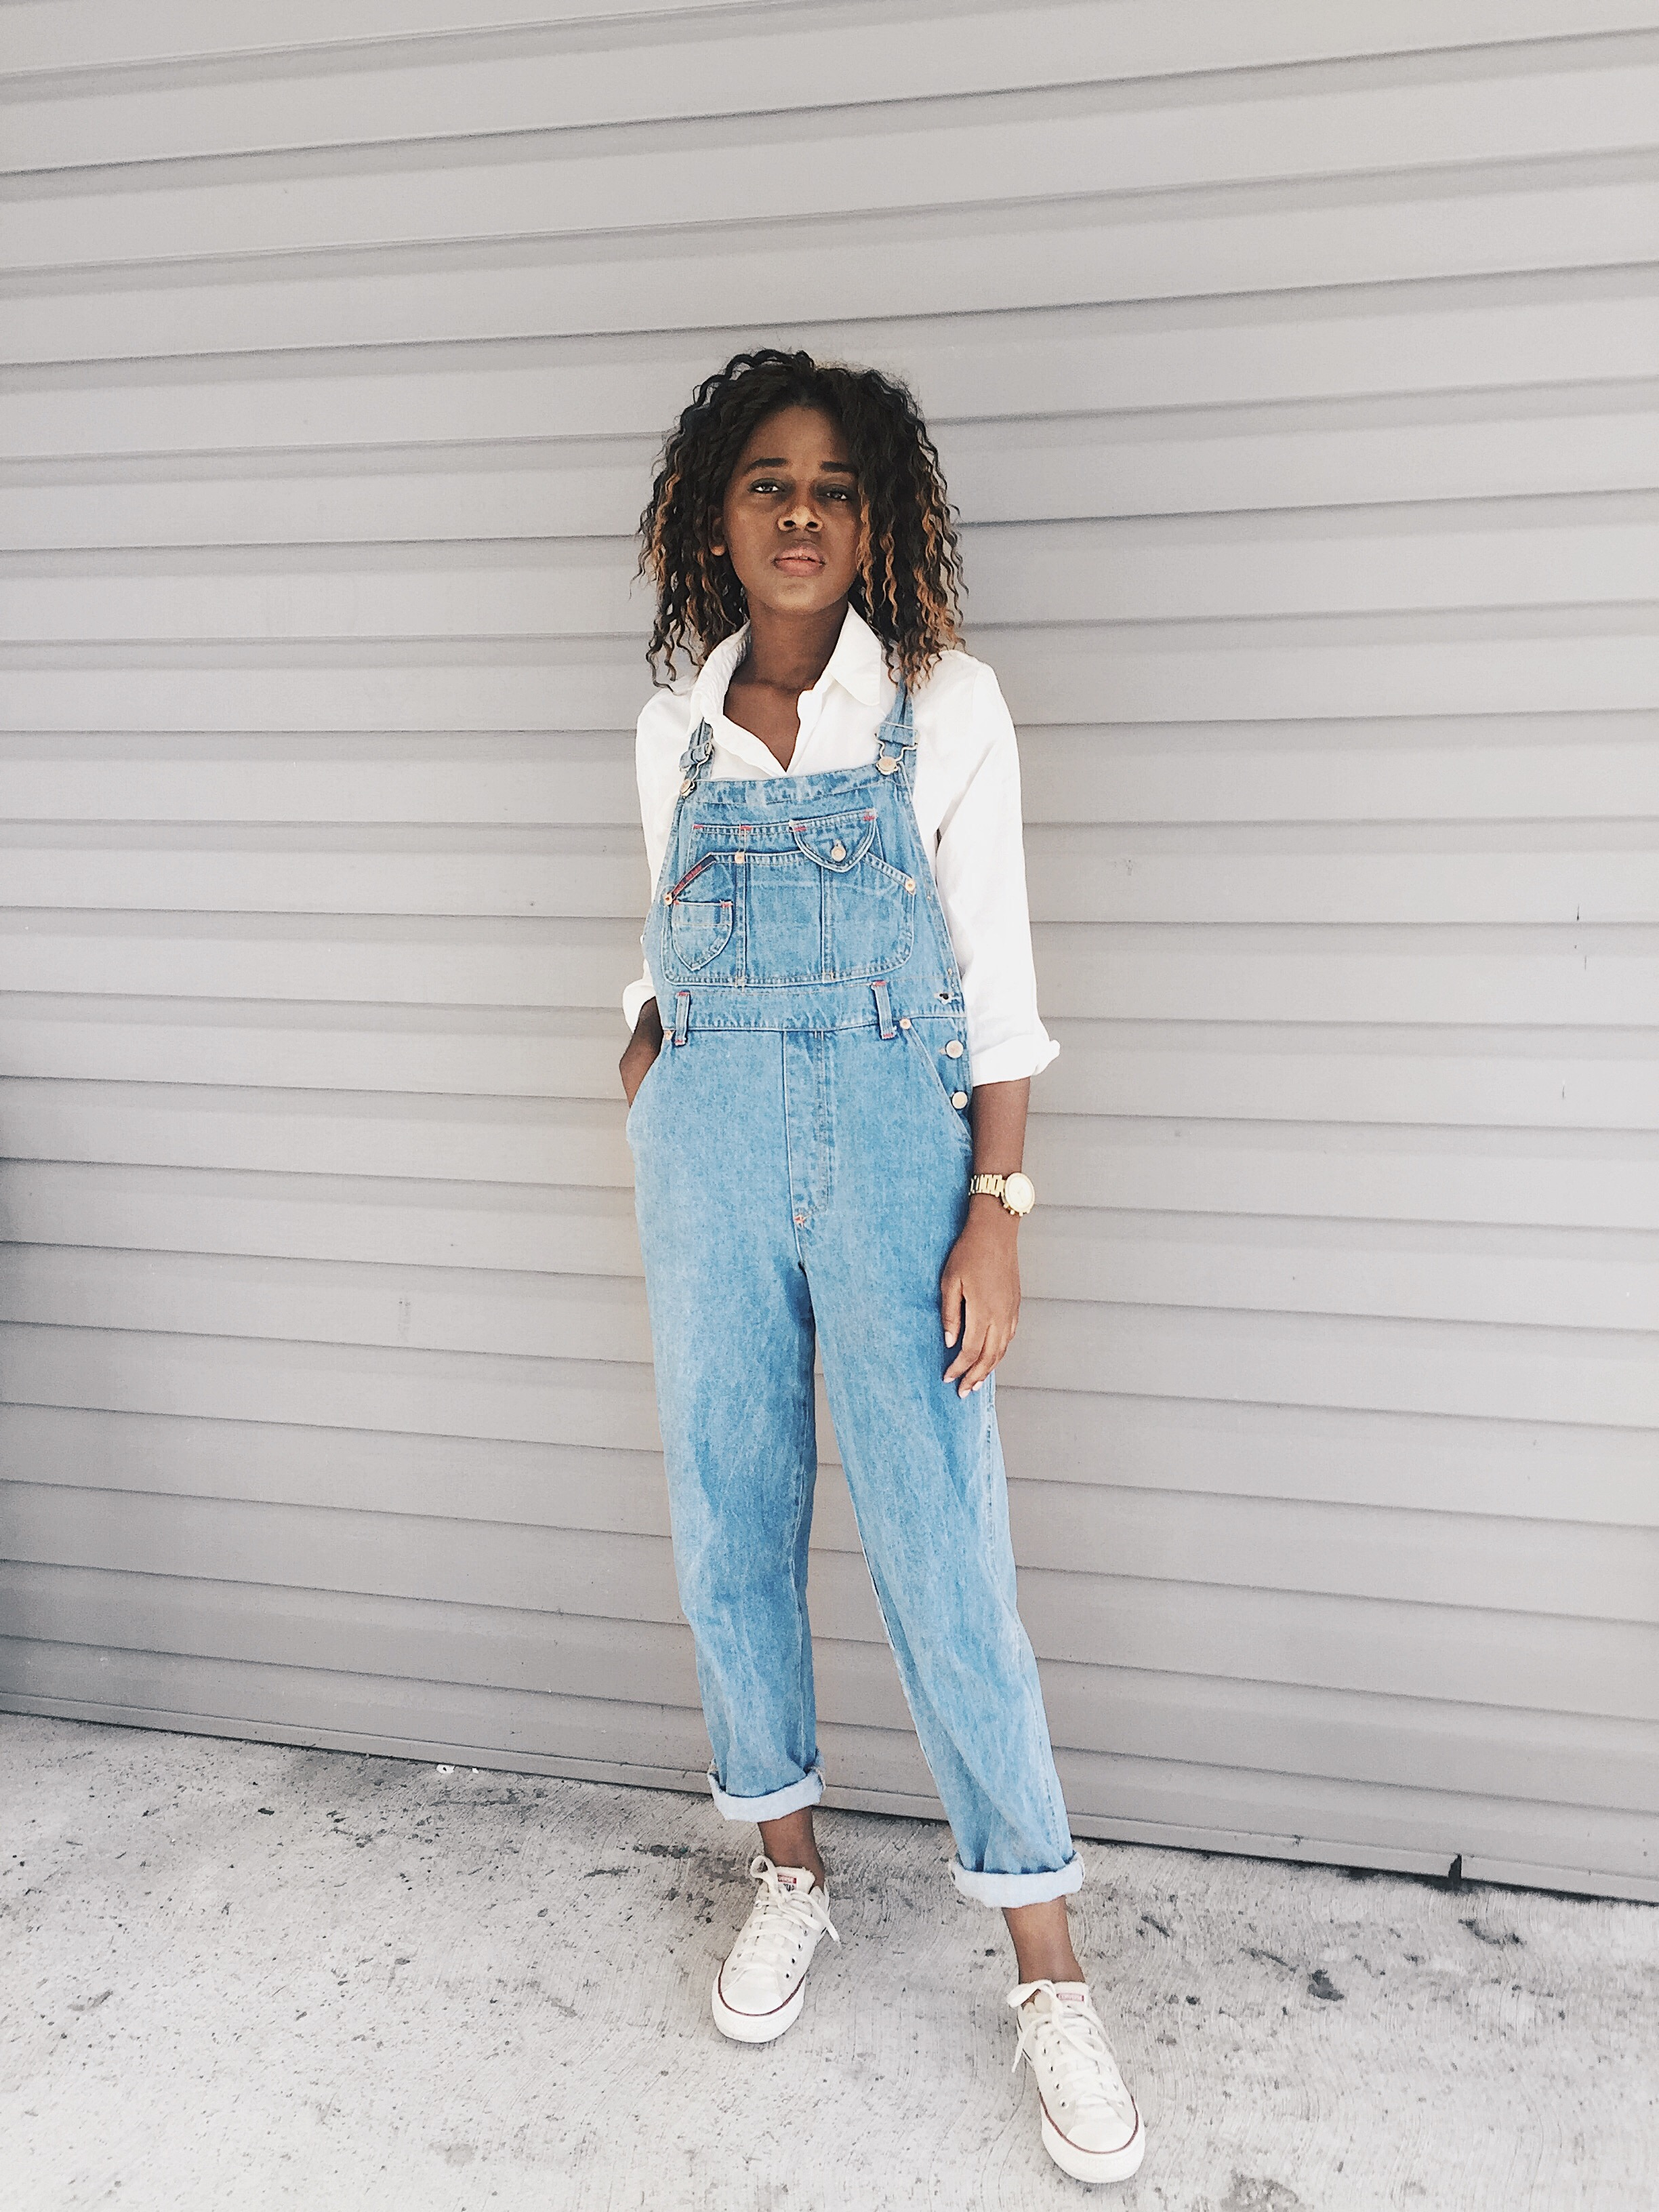 white button down shirt, light wash denim overalls, white chucks converse